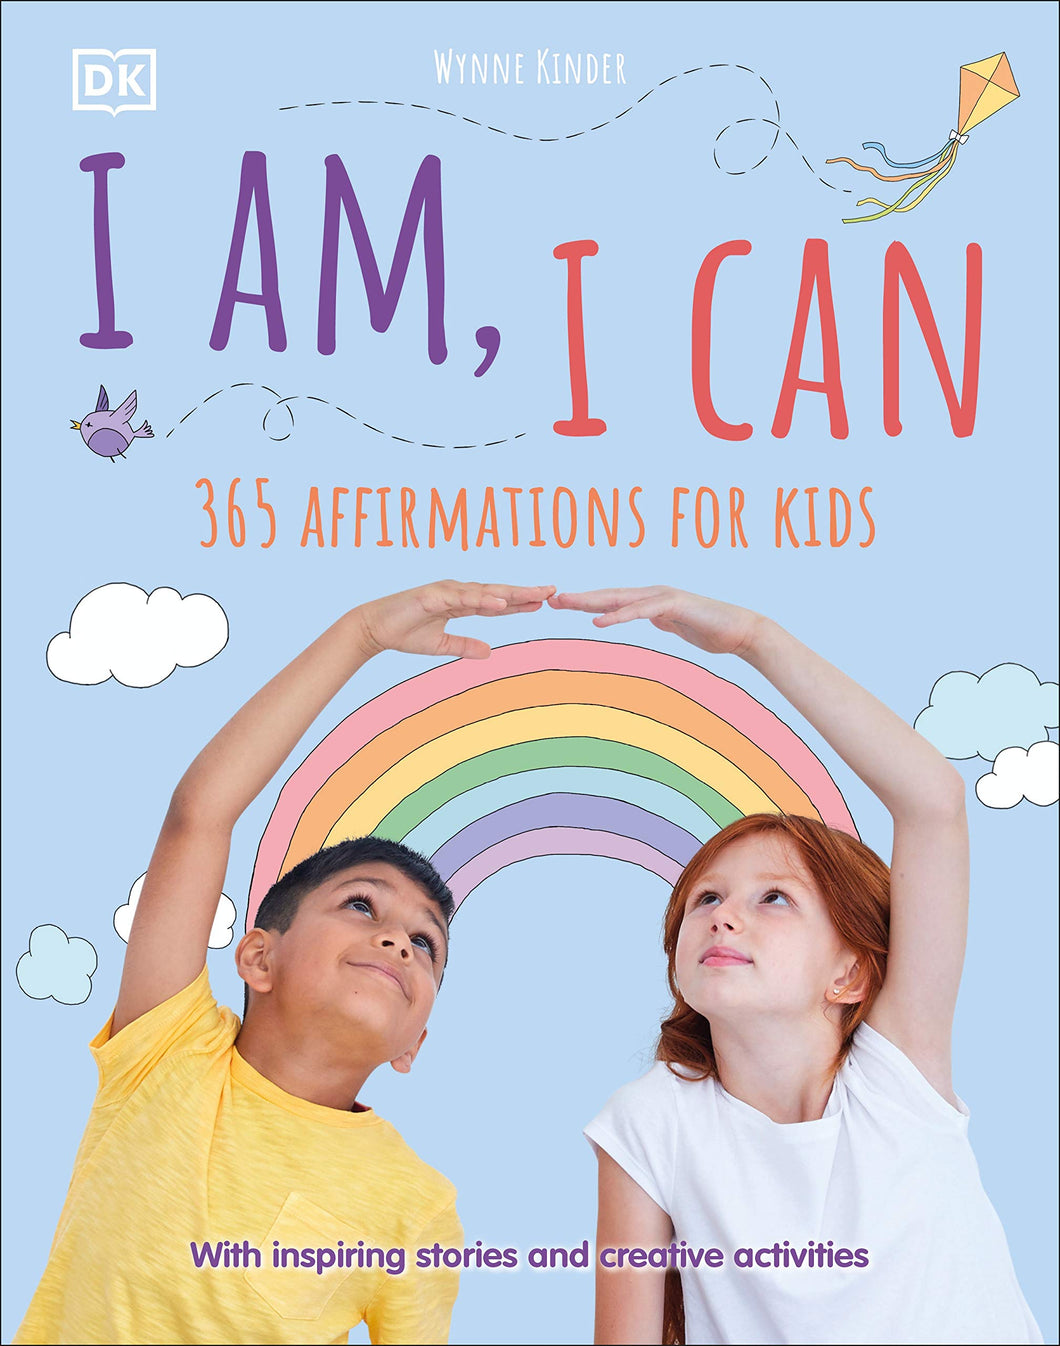 I Am, I Can - 365 Affirmations for Kids